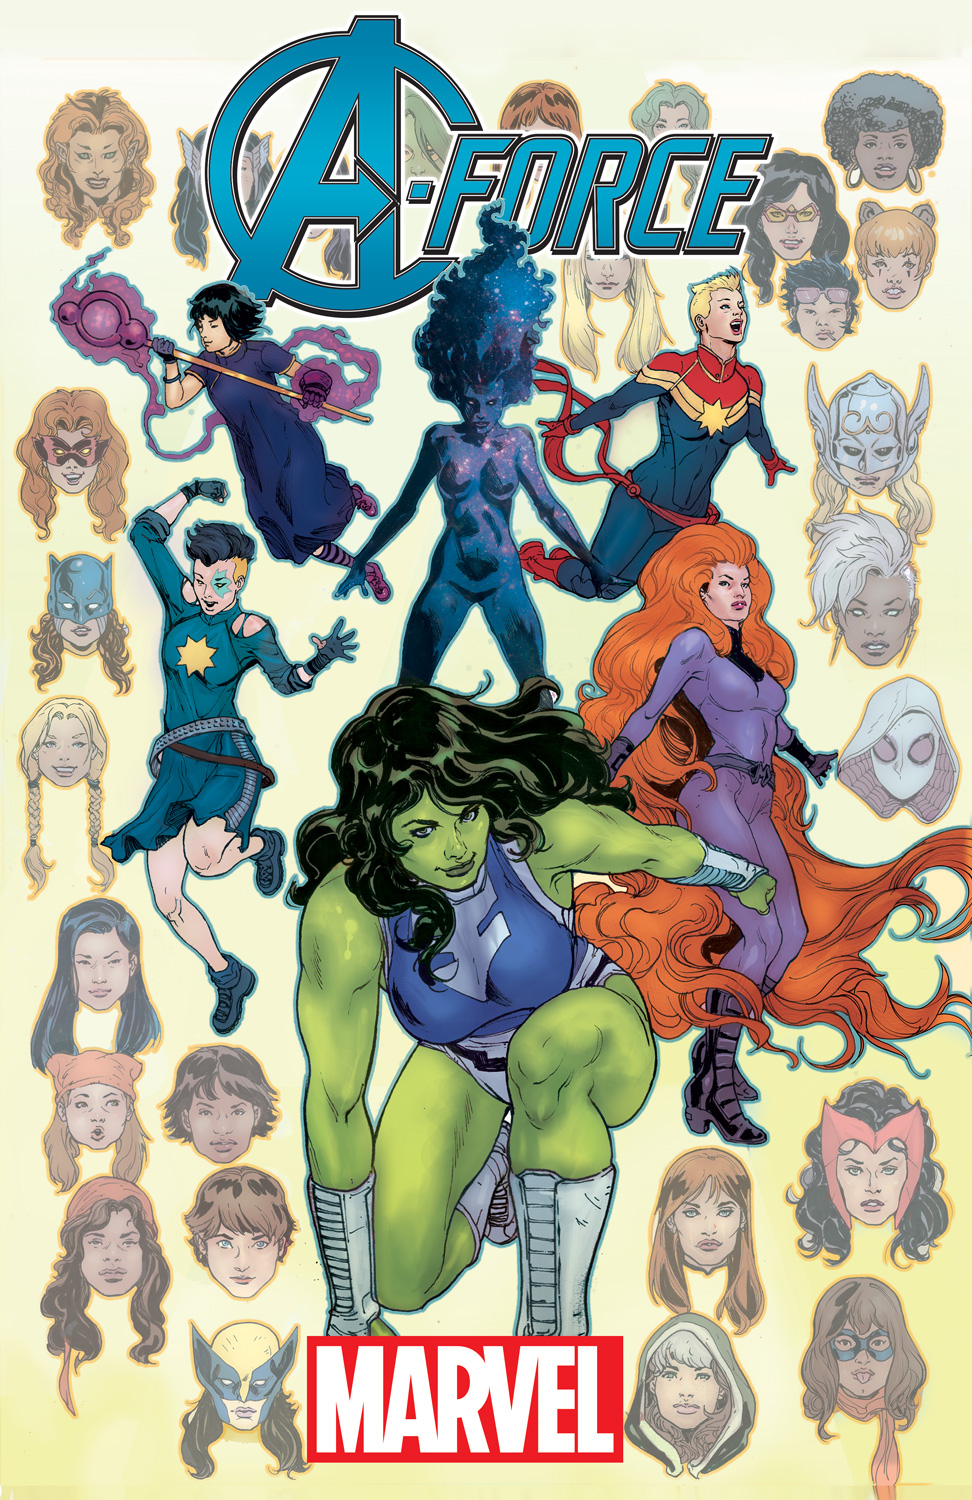 A-FORCE 1 Assembles the Women of Marvel this Fall